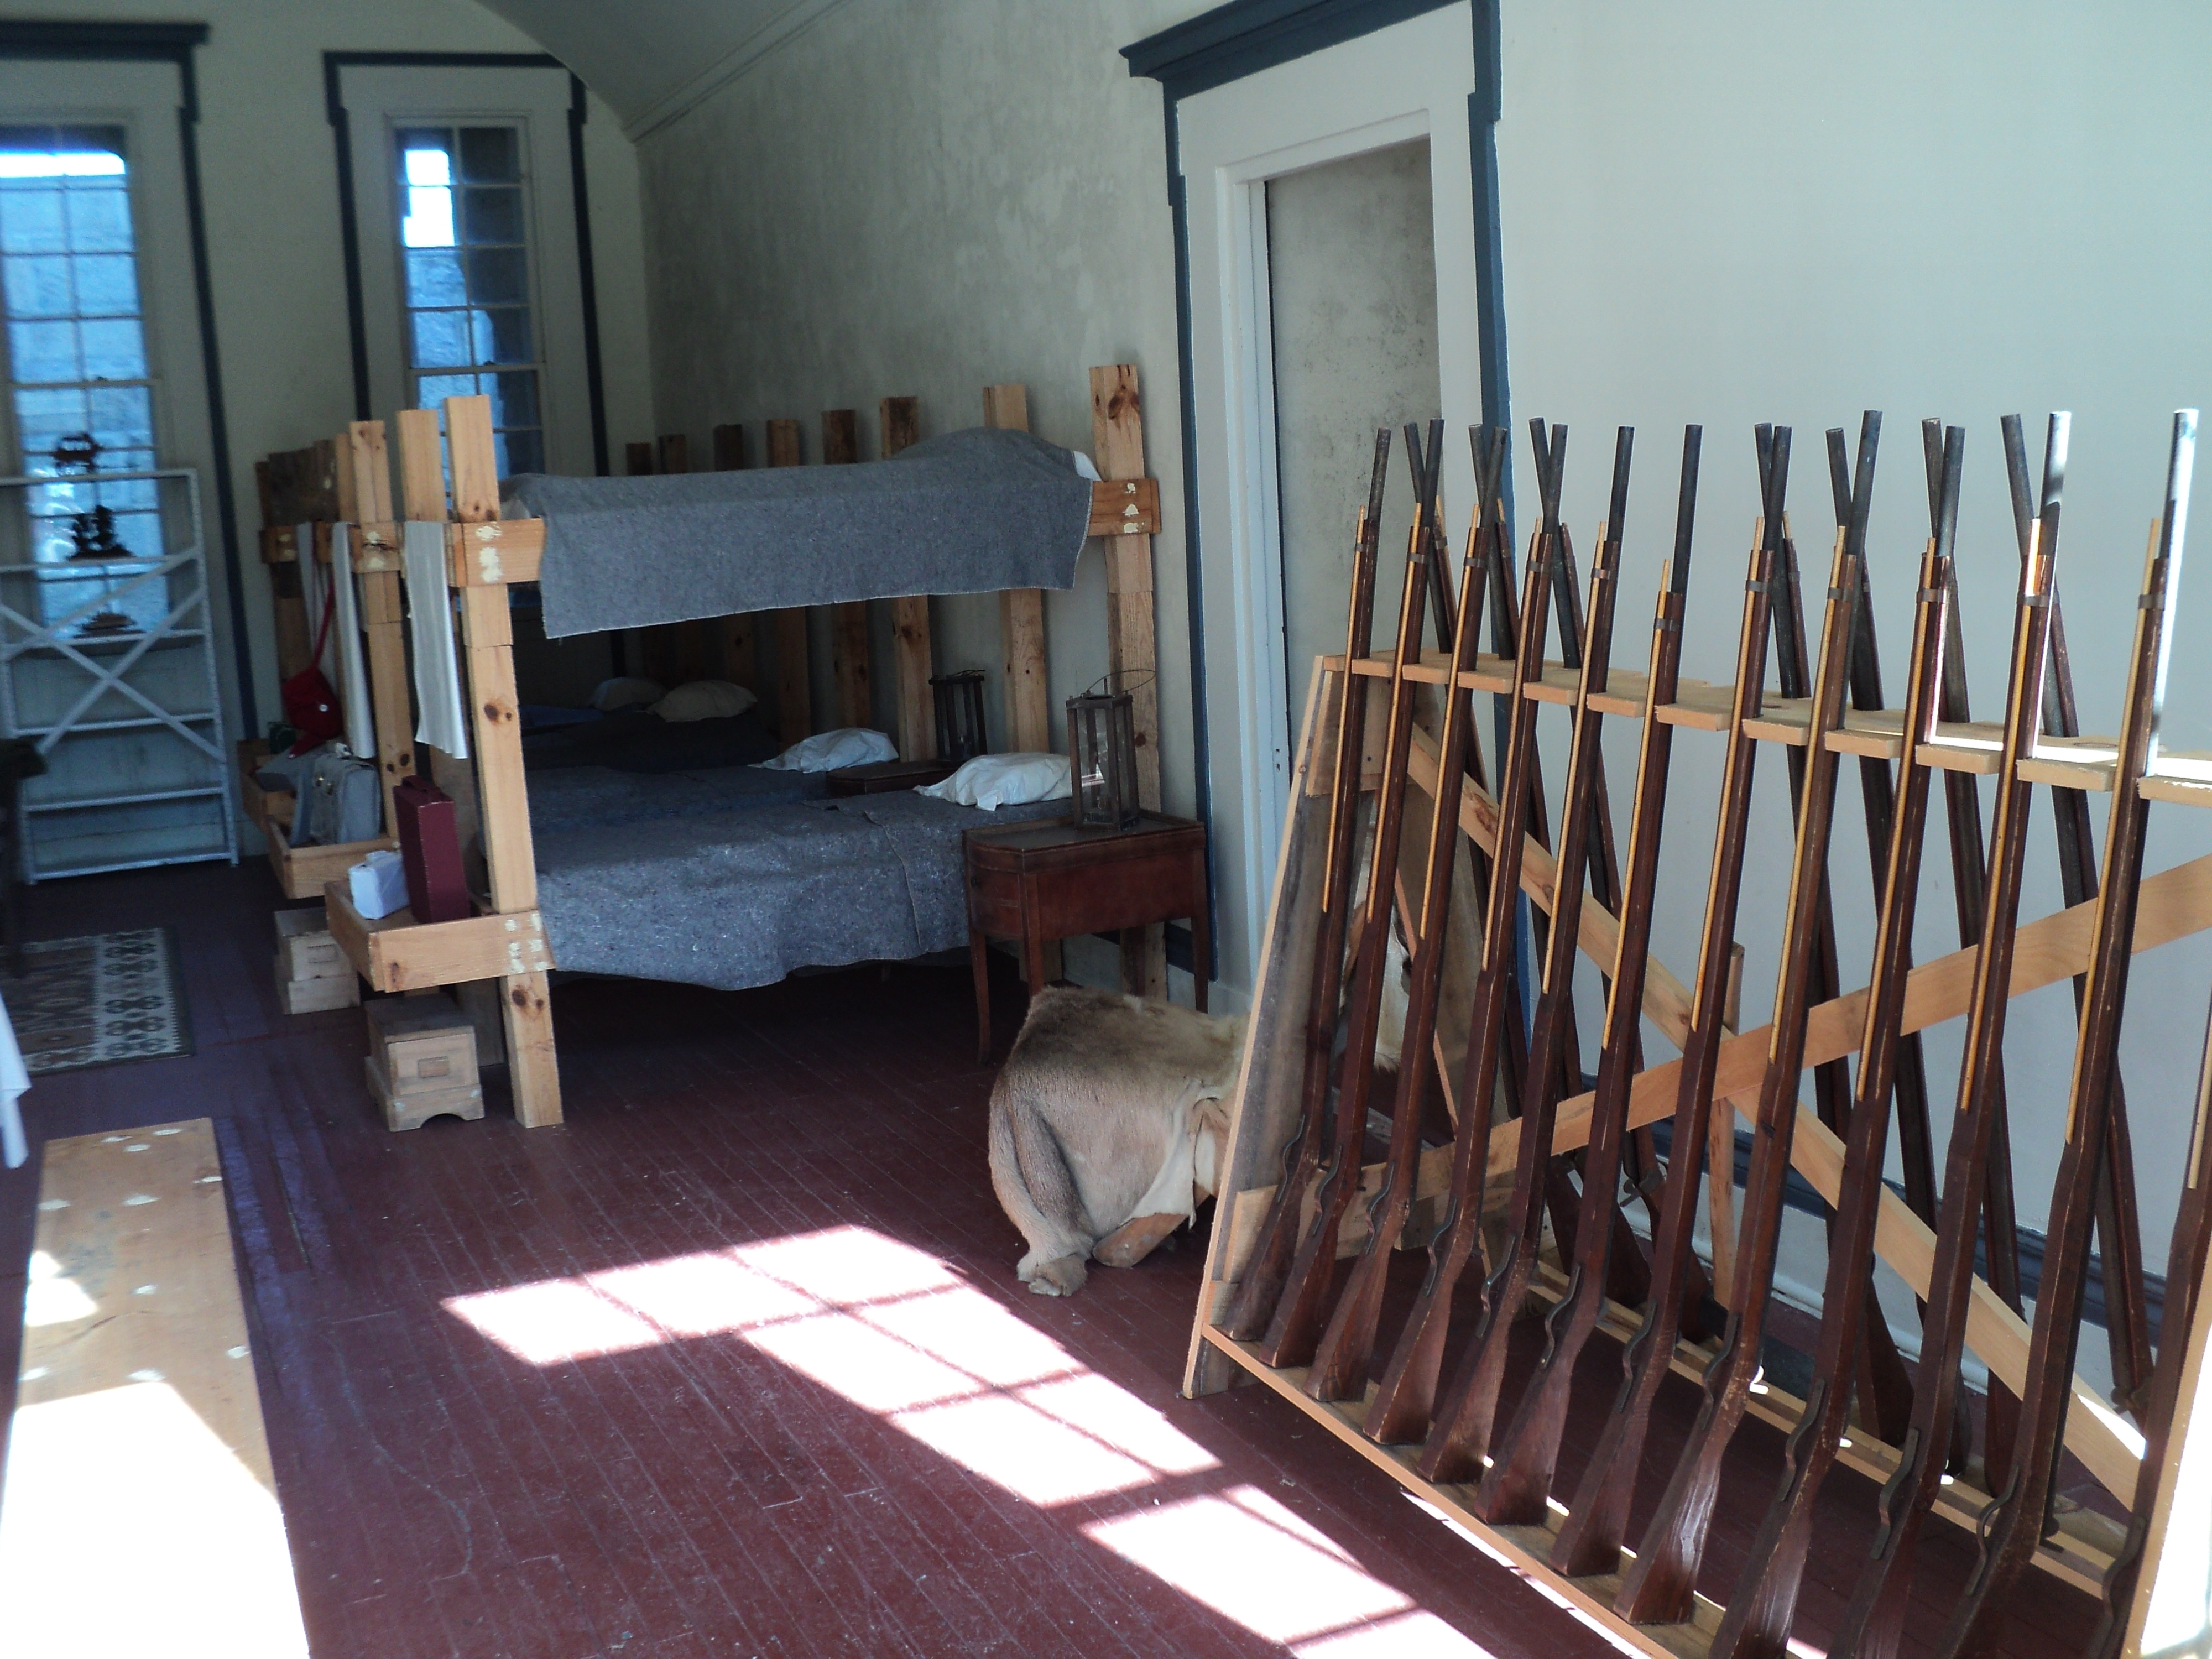 Room at Fort Trumbull